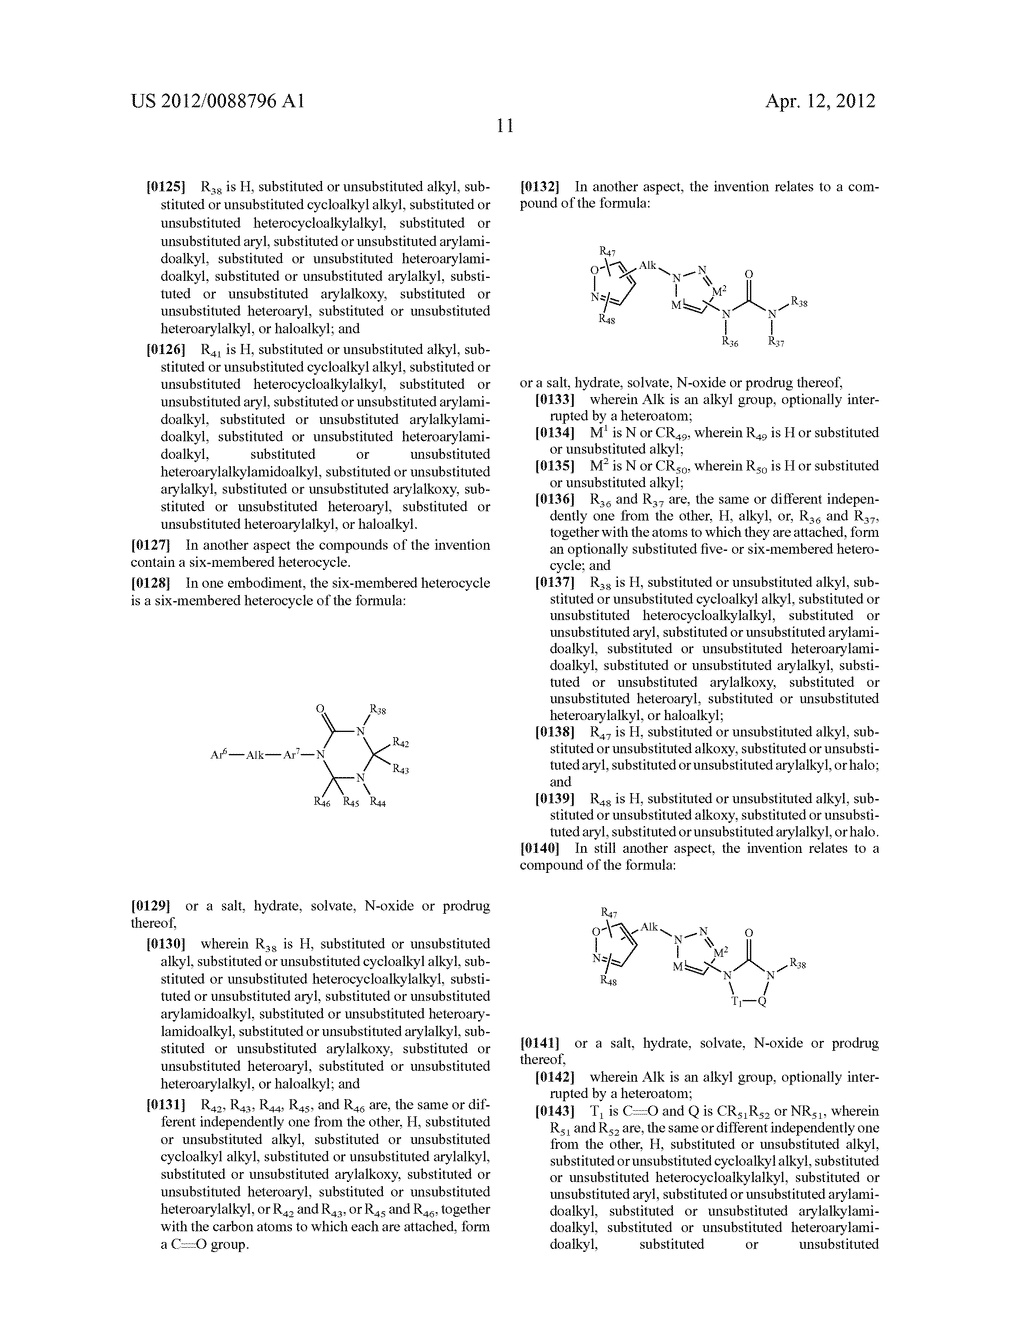 COMPOUNDS THAT INHIBIT (BLOCK) BITTER TASTE IN COMPOSITION AND USE THEREOF - diagram, schematic, and image 15